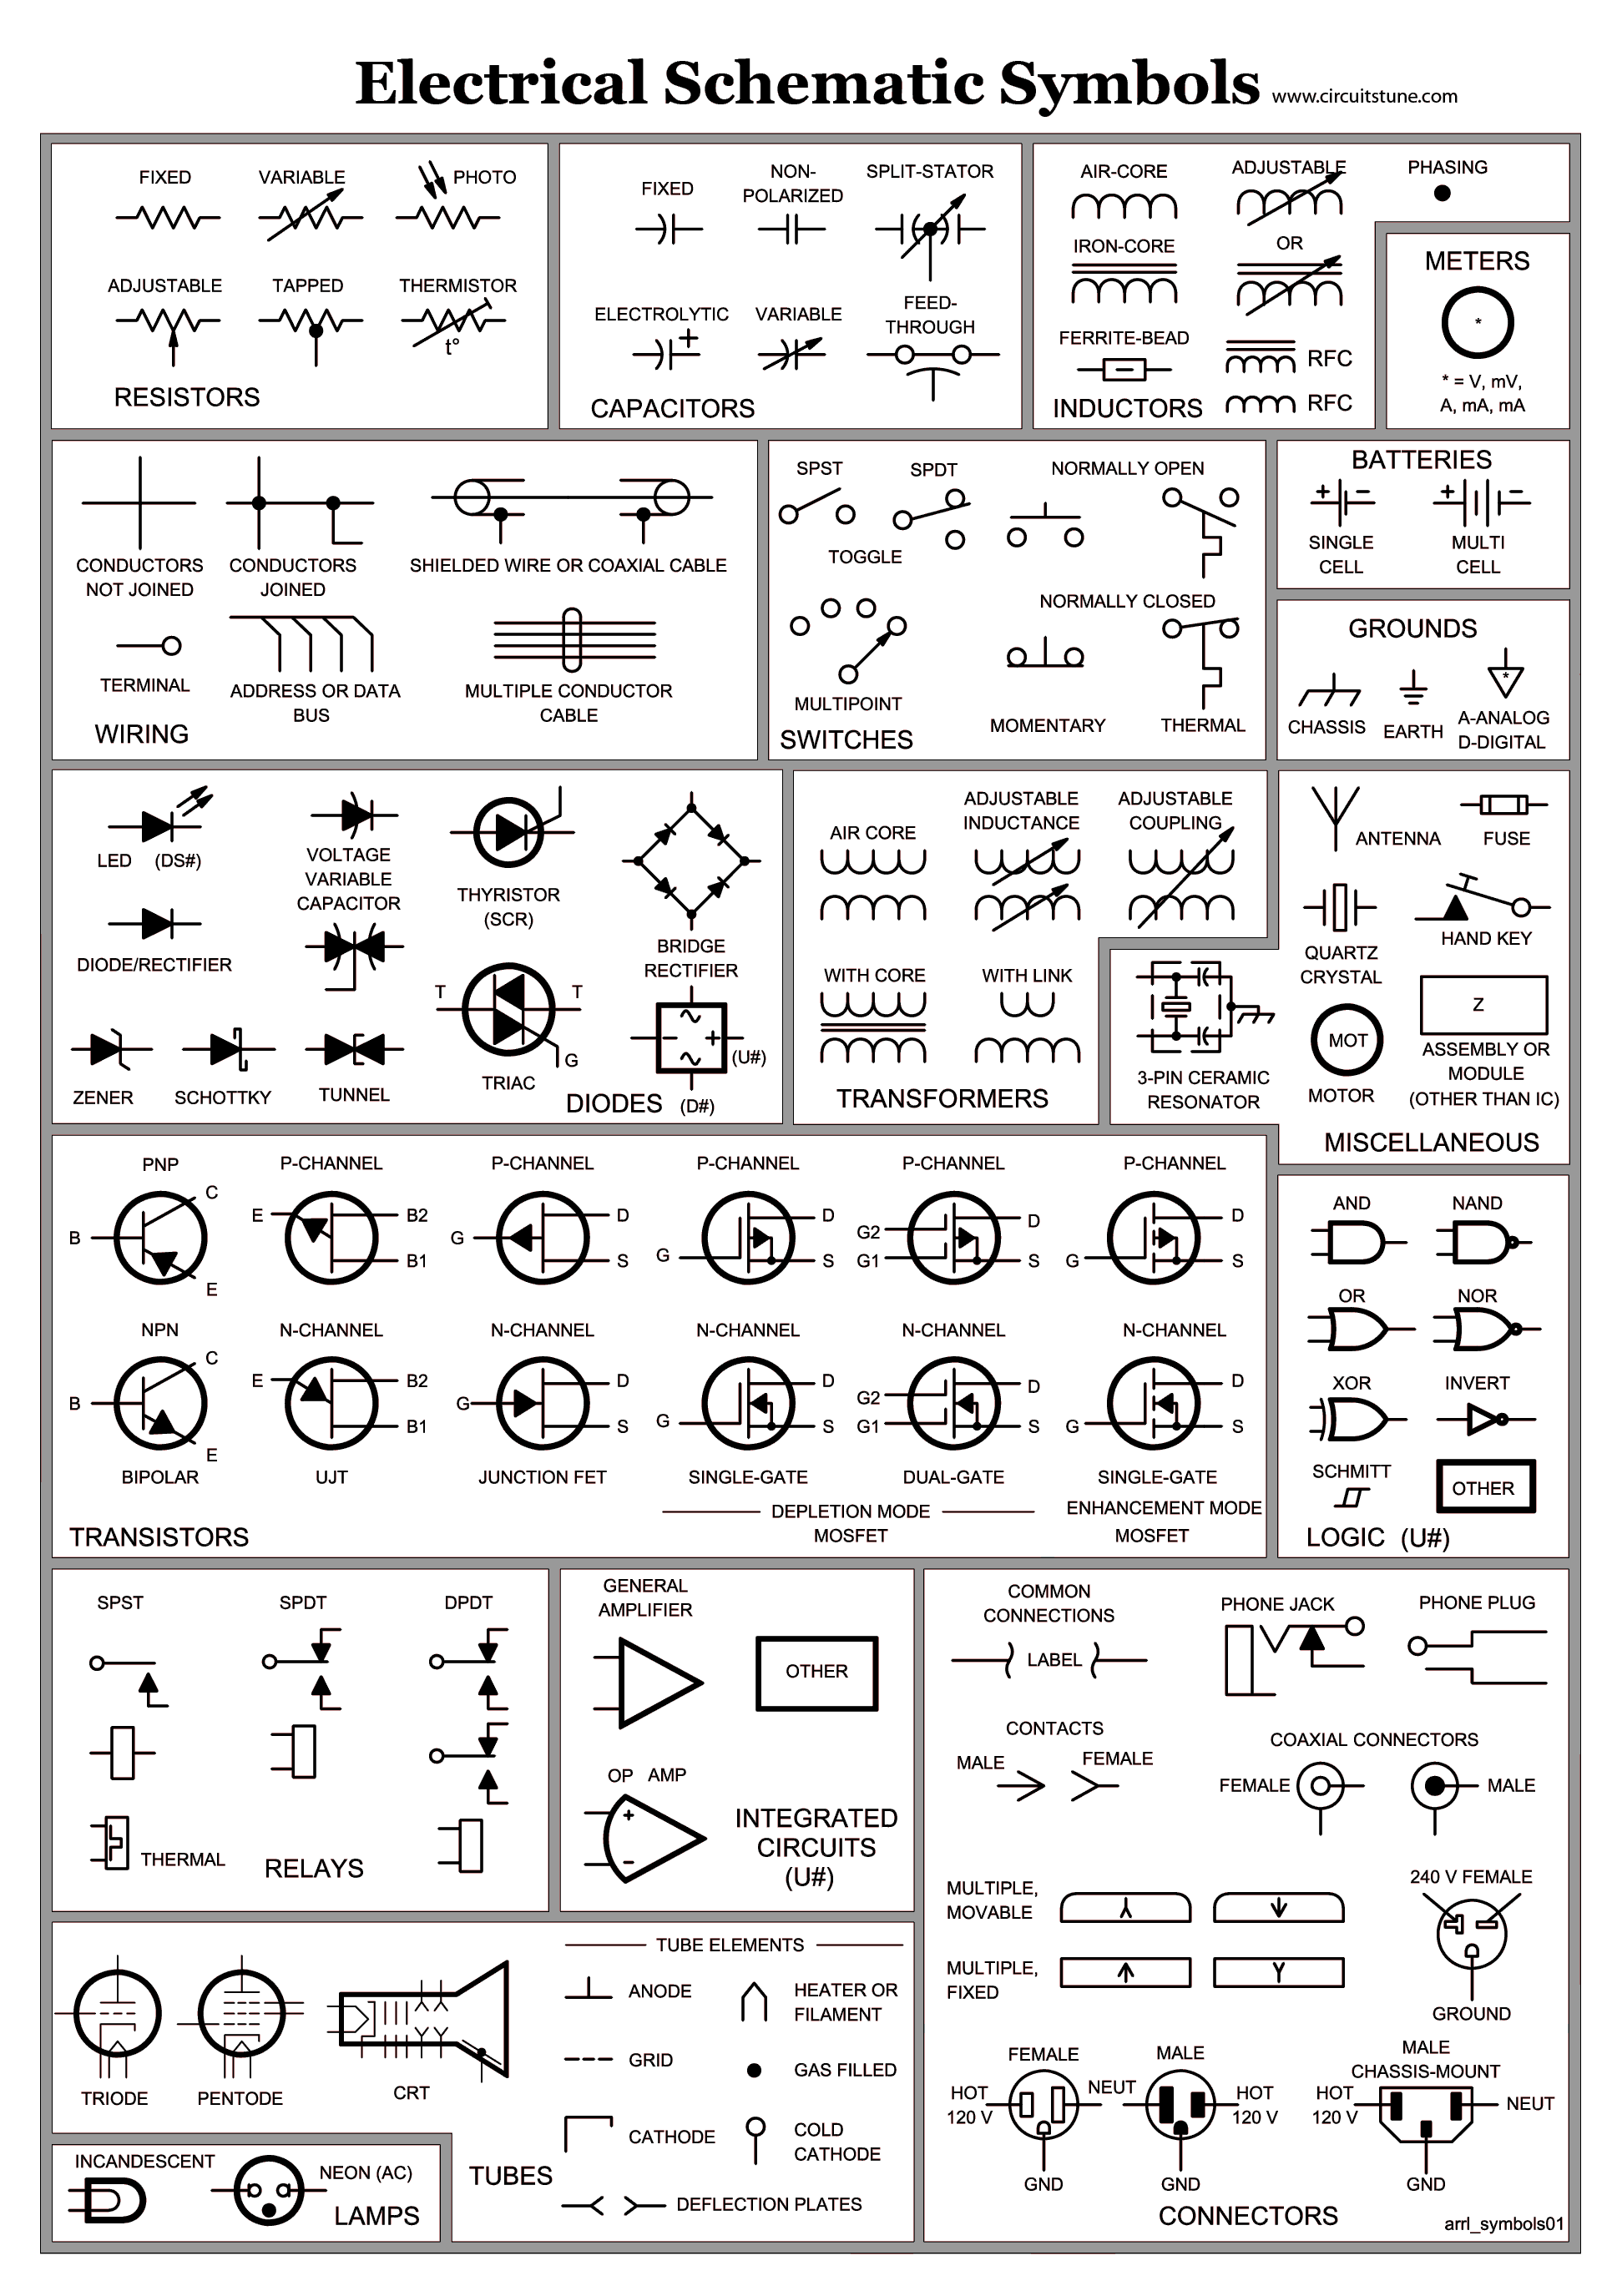 Basic Wiring Diagram Symbols - Universal Wiring Diagrams cable-data -  cable-data.sceglicongusto.it